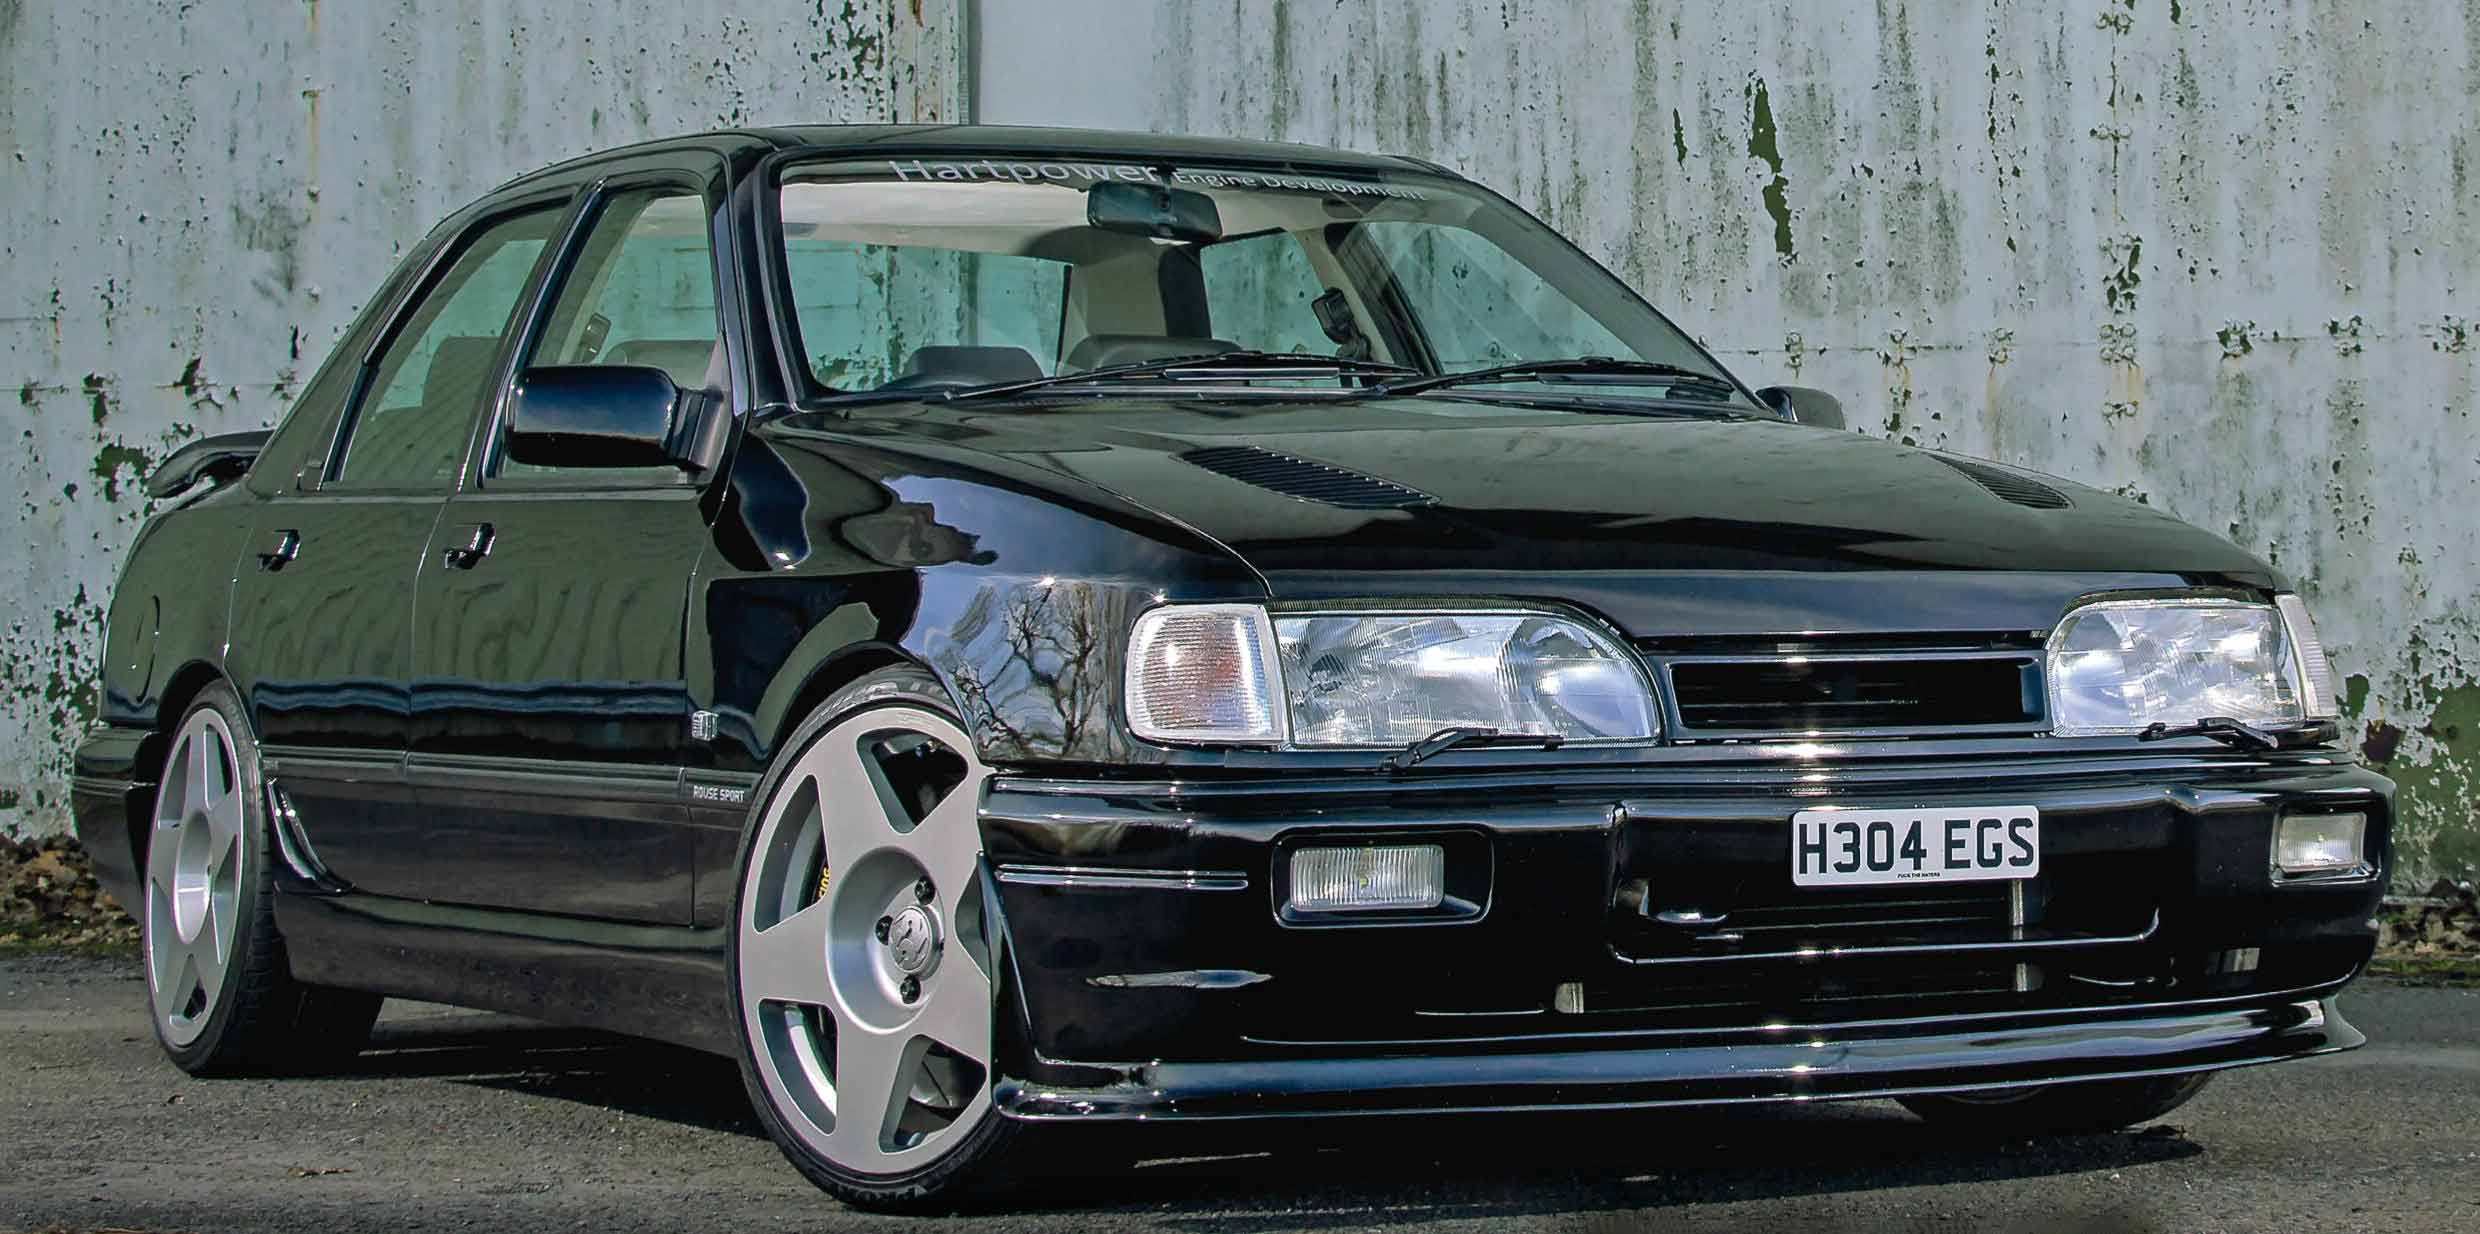 Tuned 500bhp+ Ford Sierra Rouse Sport 304-R - Drive-My Blogs